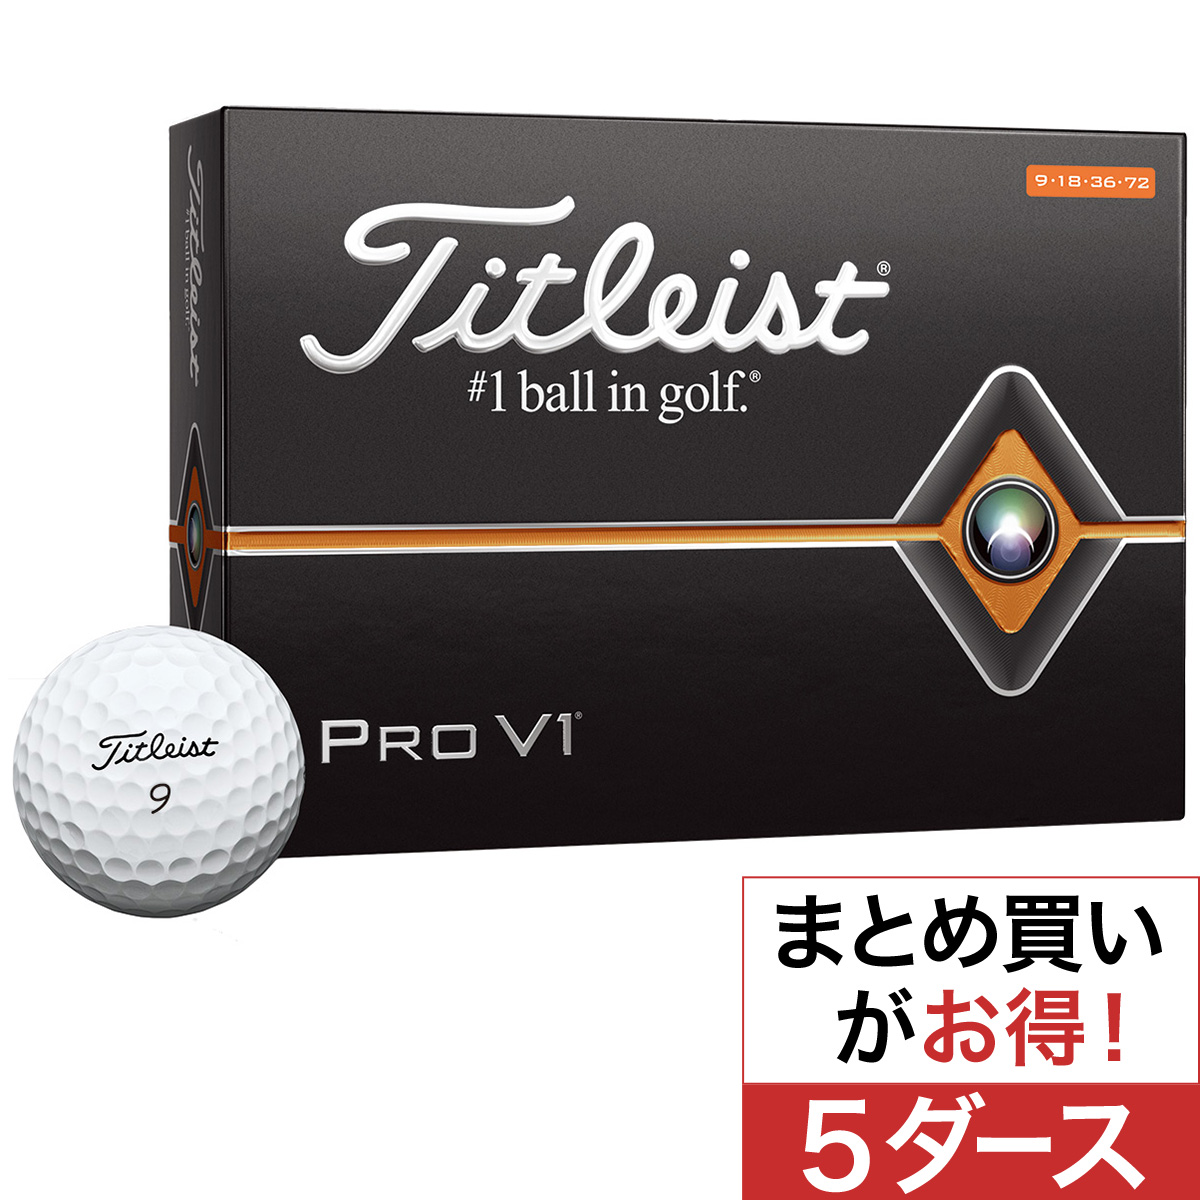 PRO V1 19 LIMITED PLAY#9 ボール 5ダースセット